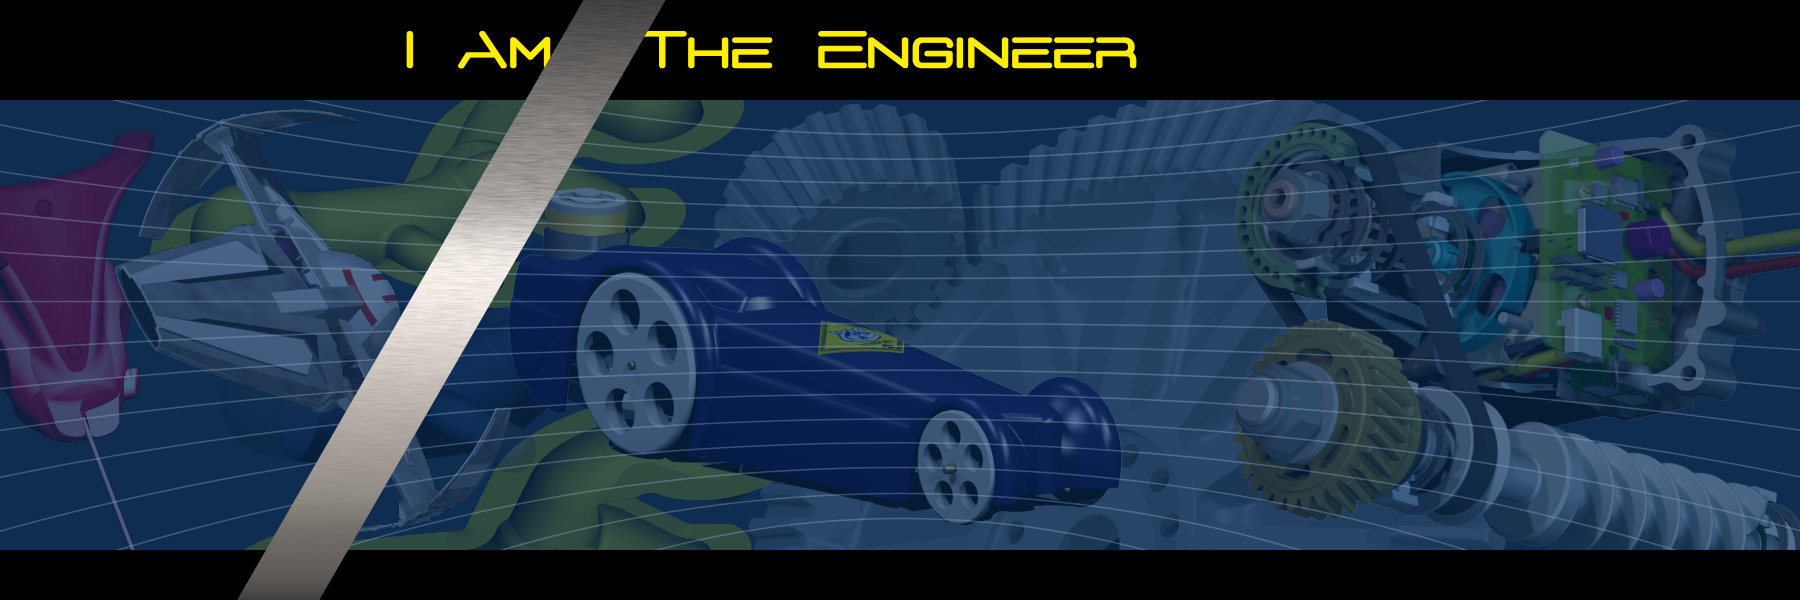 I Am The Engineer